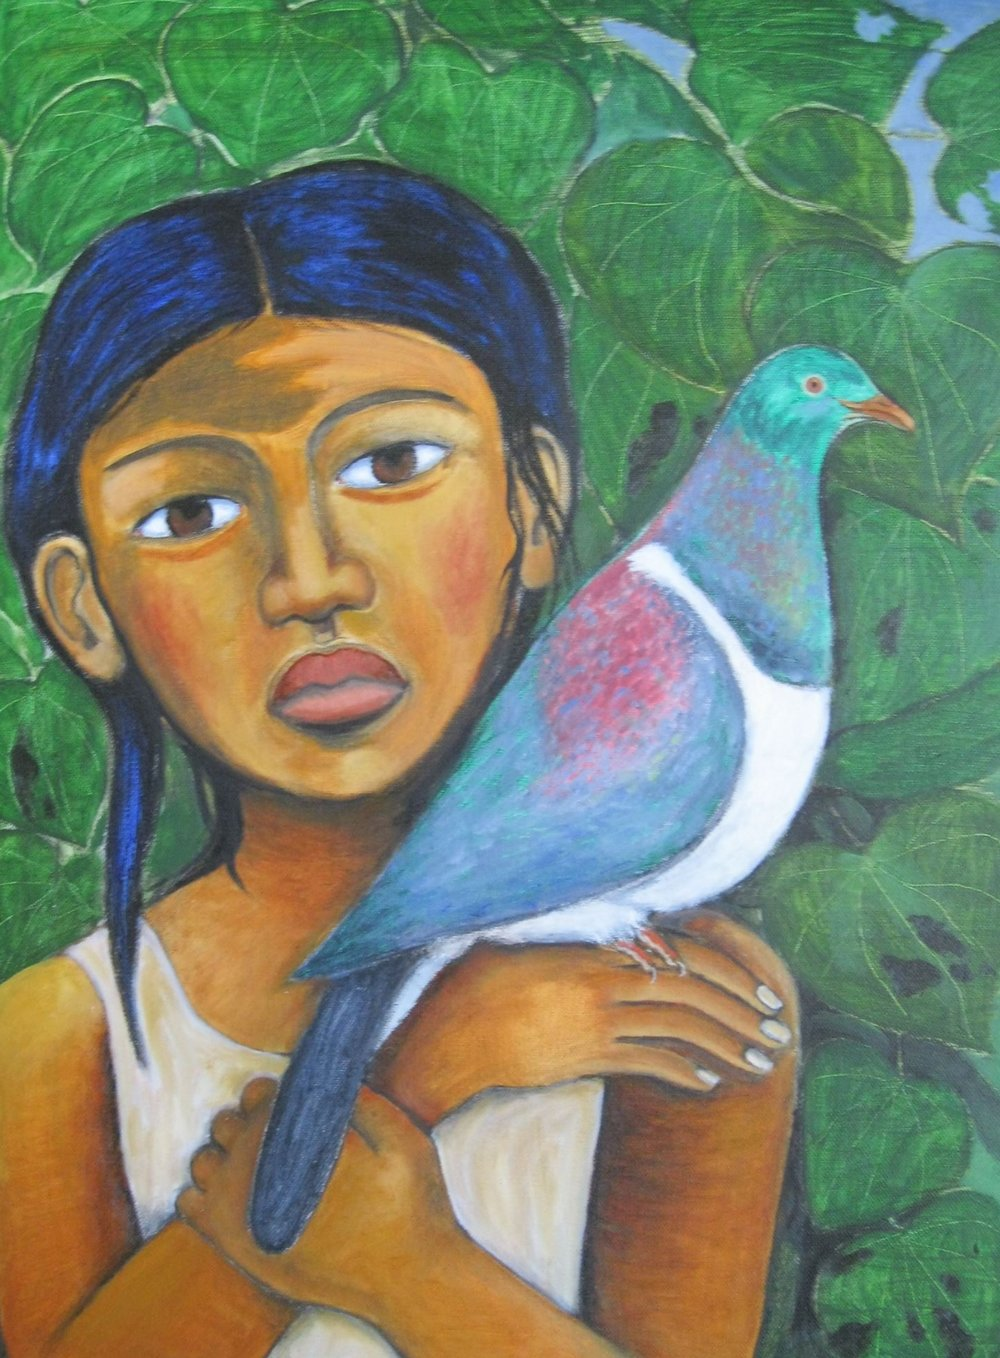 'Child with kereru'  by Robyn Kahukiwa. Click   here   to learn more about this artwork.